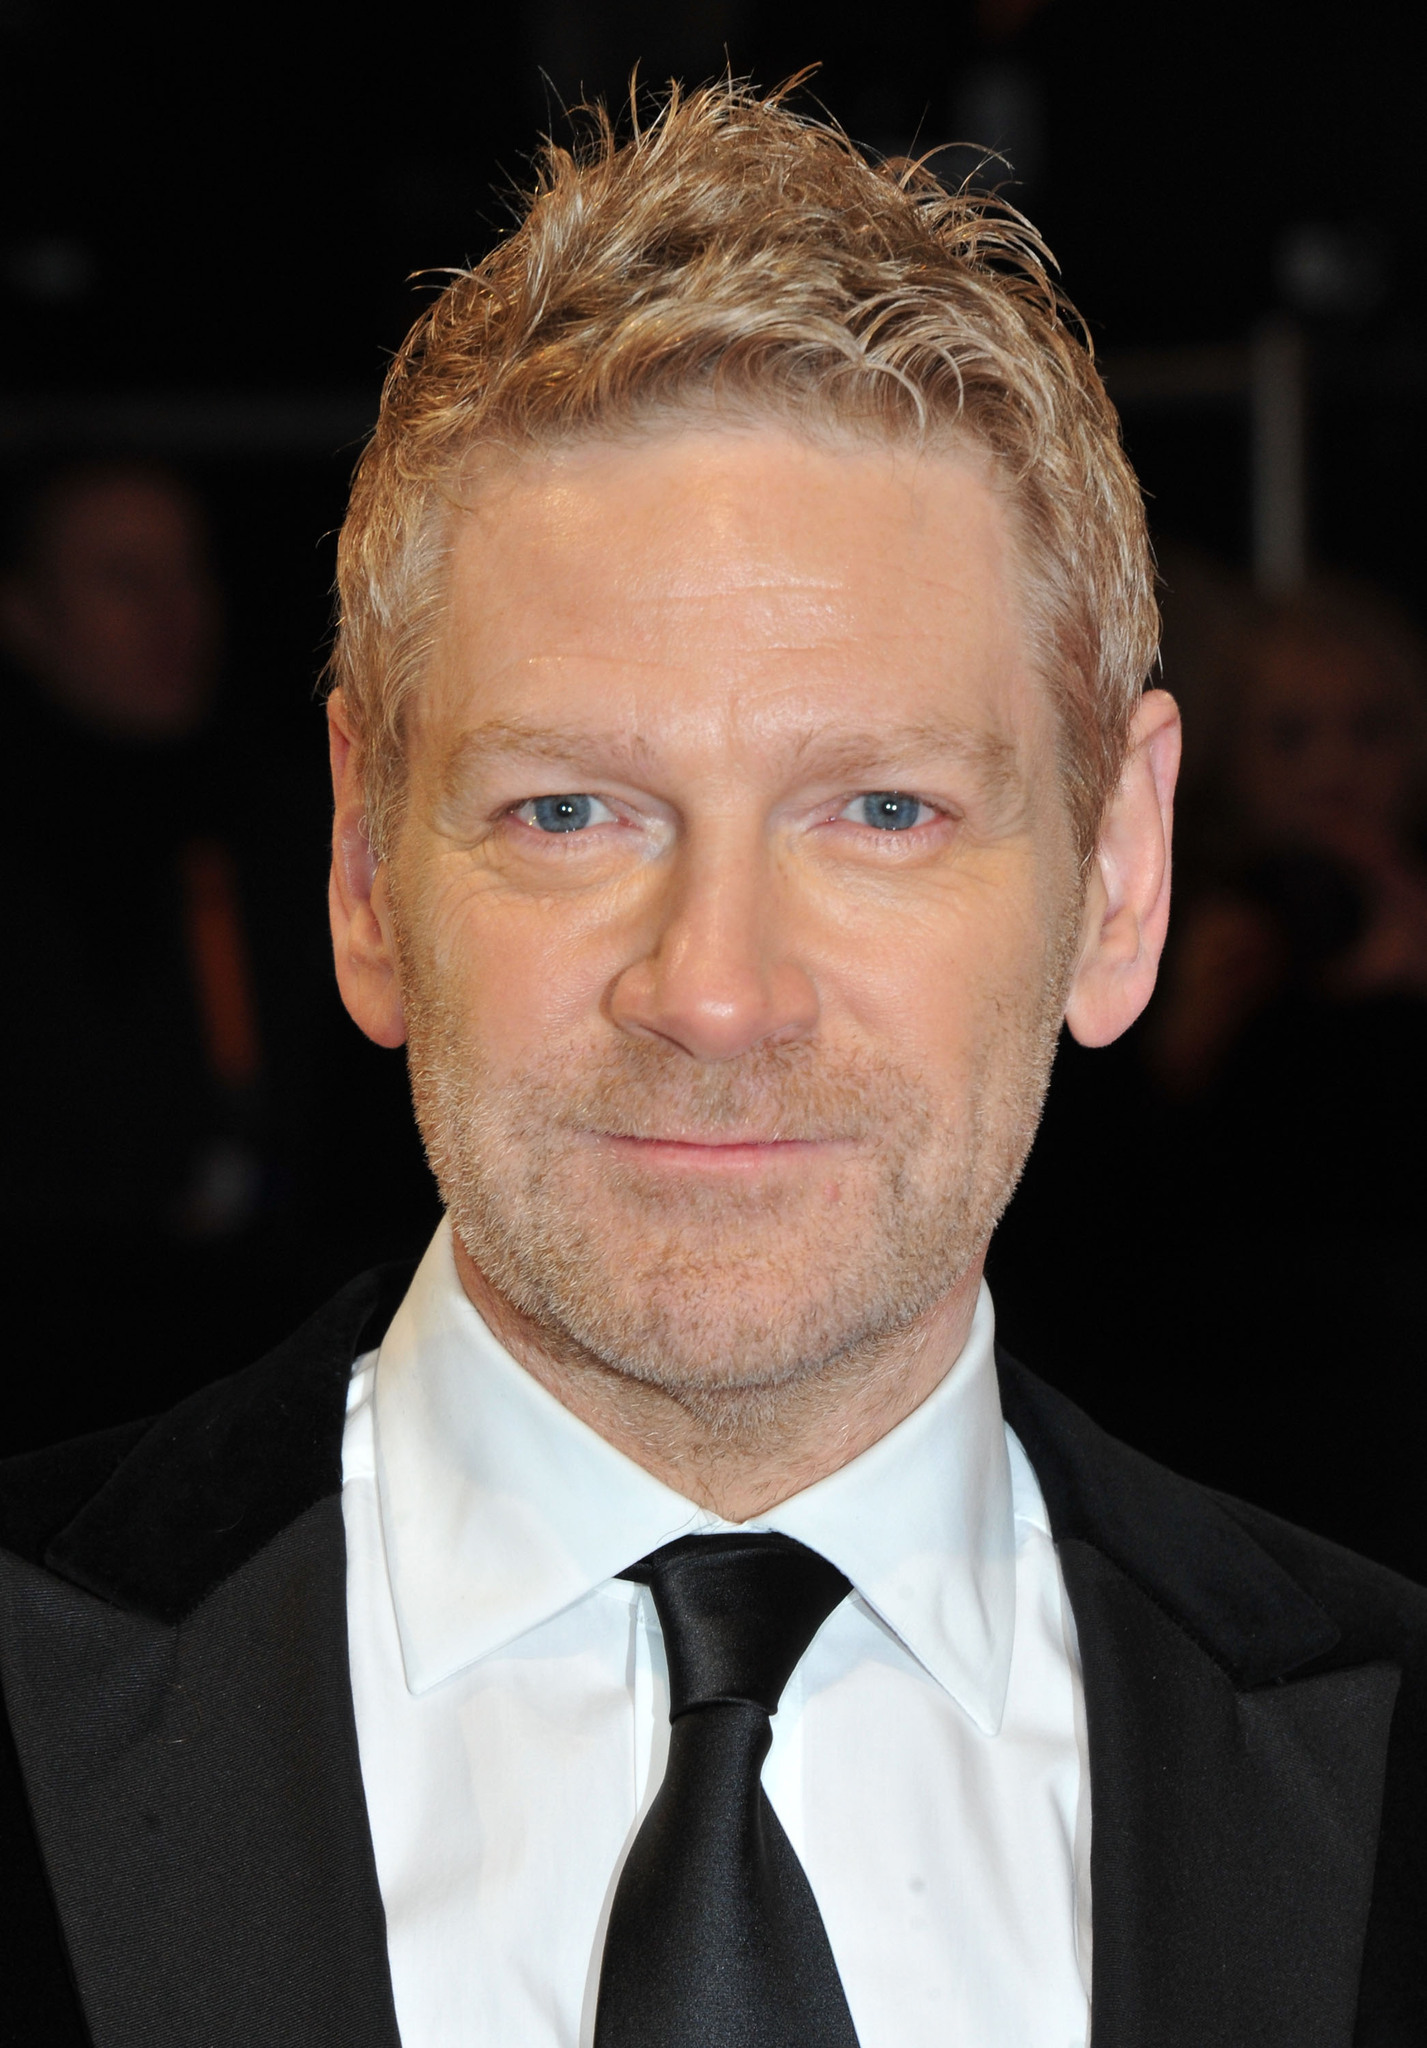 pictures Kenneth Branagh (born 1960)